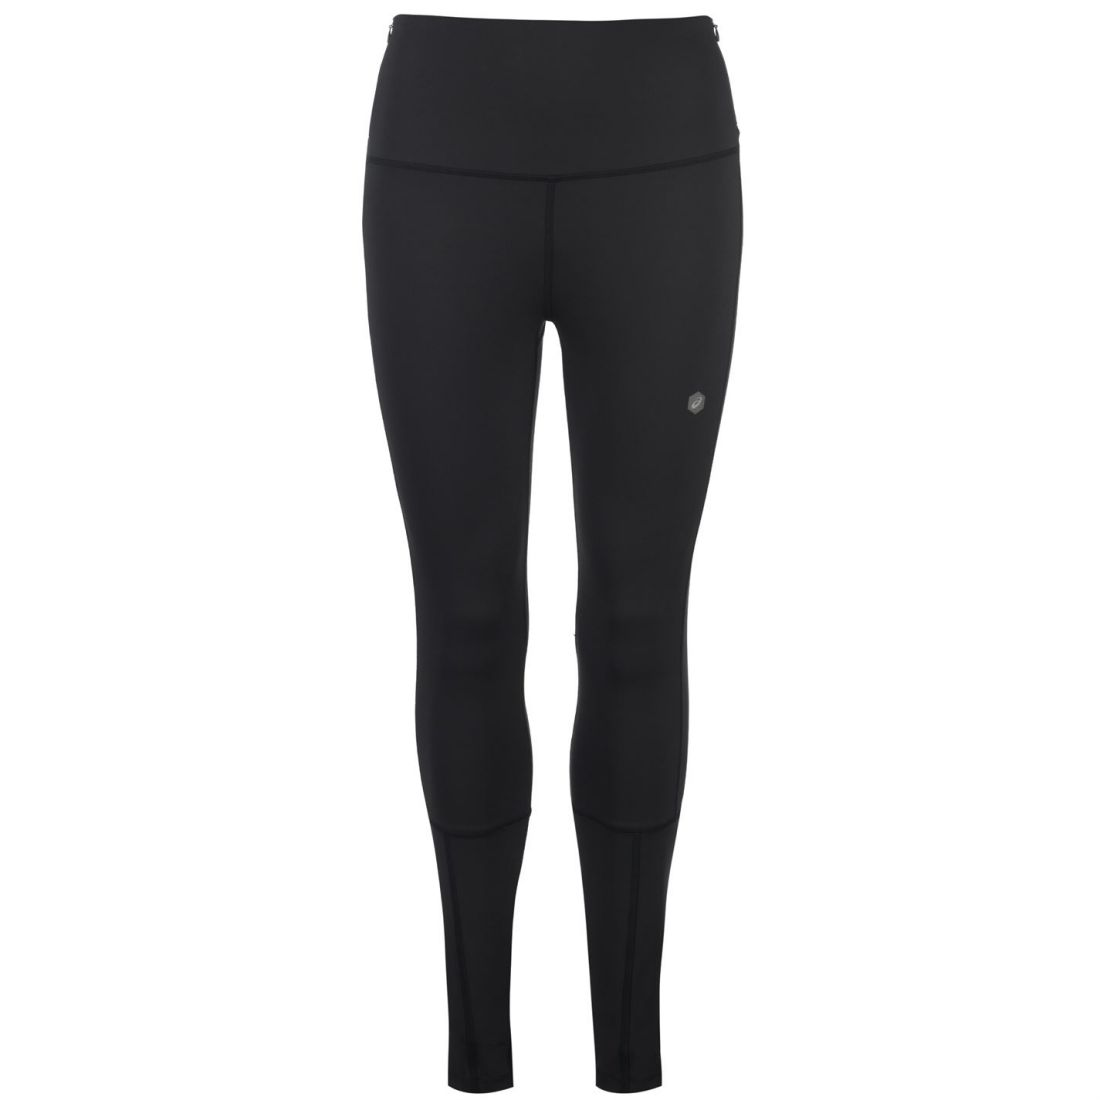 edef509c6228 Image is loading Asics-Highwaist-Tights-Ladies-Performance-Pants-Trousers -Bottoms-